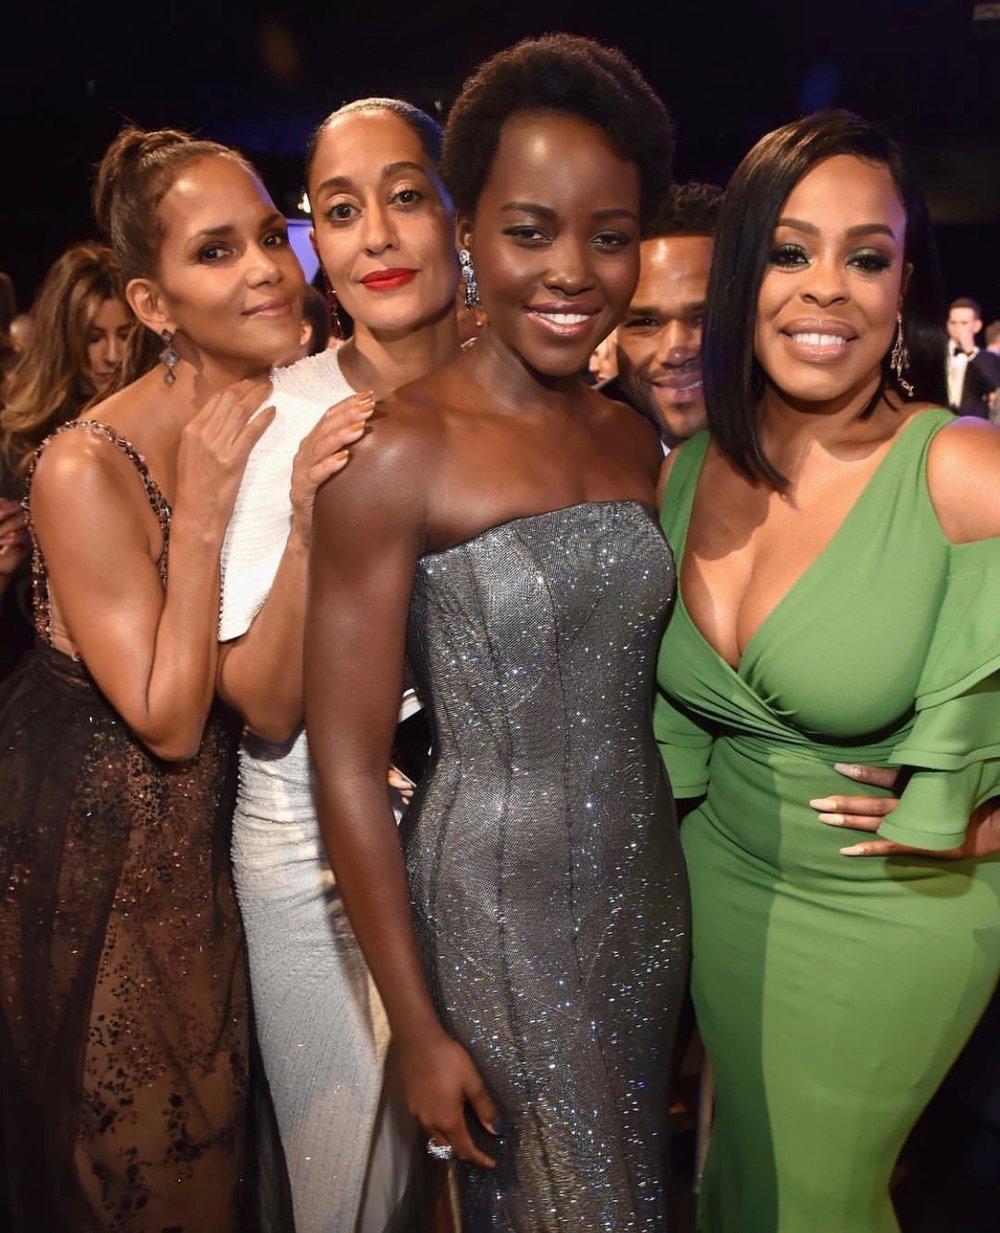 Beautiful Talented Black Women.